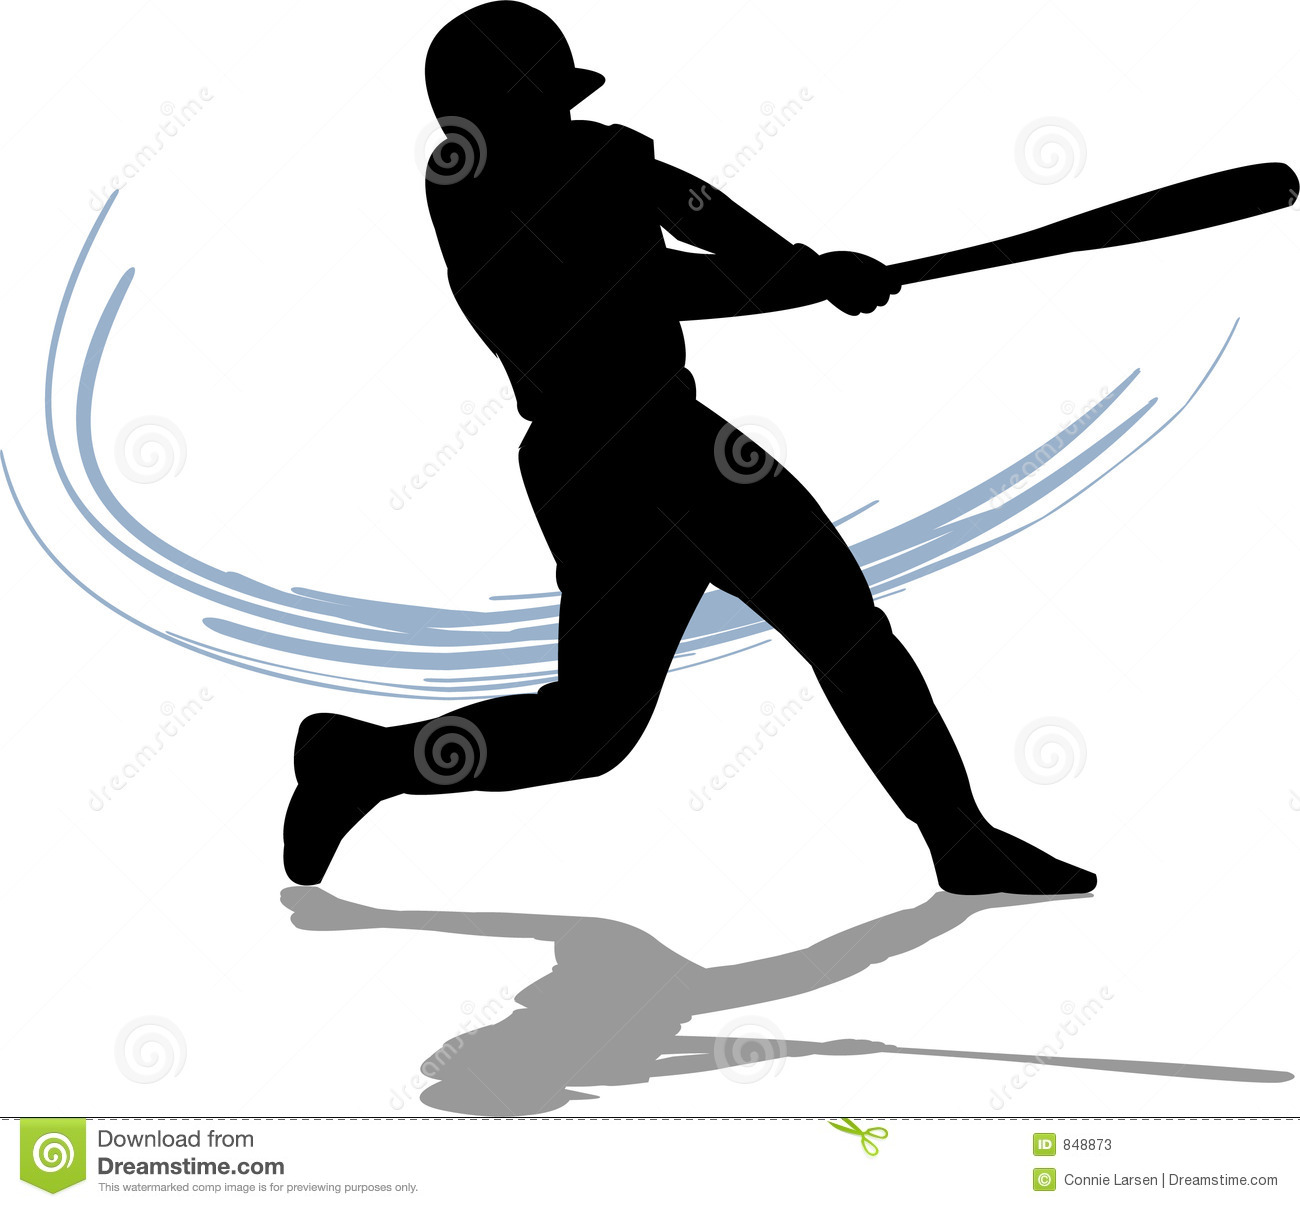 Illustration of a baseball player swinging the bat.